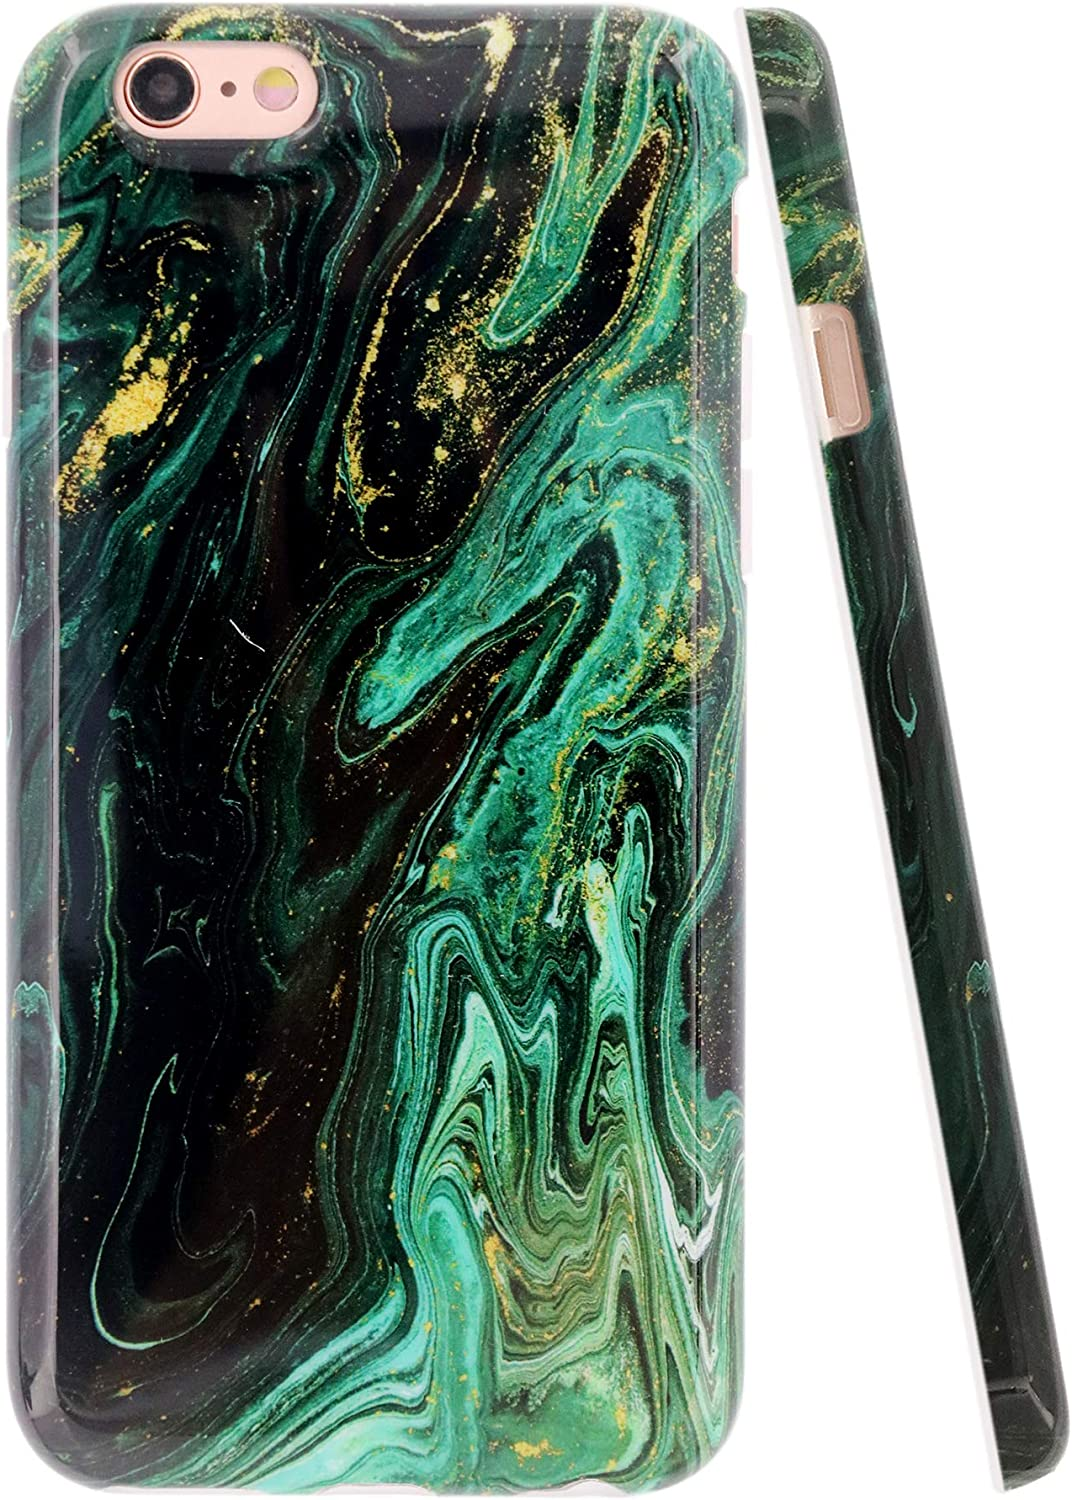 A-Focus Compatible with iPhone 6s Case Marble, iPhone 6 Case, Smooth Green Yellow Marble Texture Pattern IMD Design Shock Proof TPU Silicone Case for iPhone 6 iPhone 6s 4.7 inch Glossy Turquoise